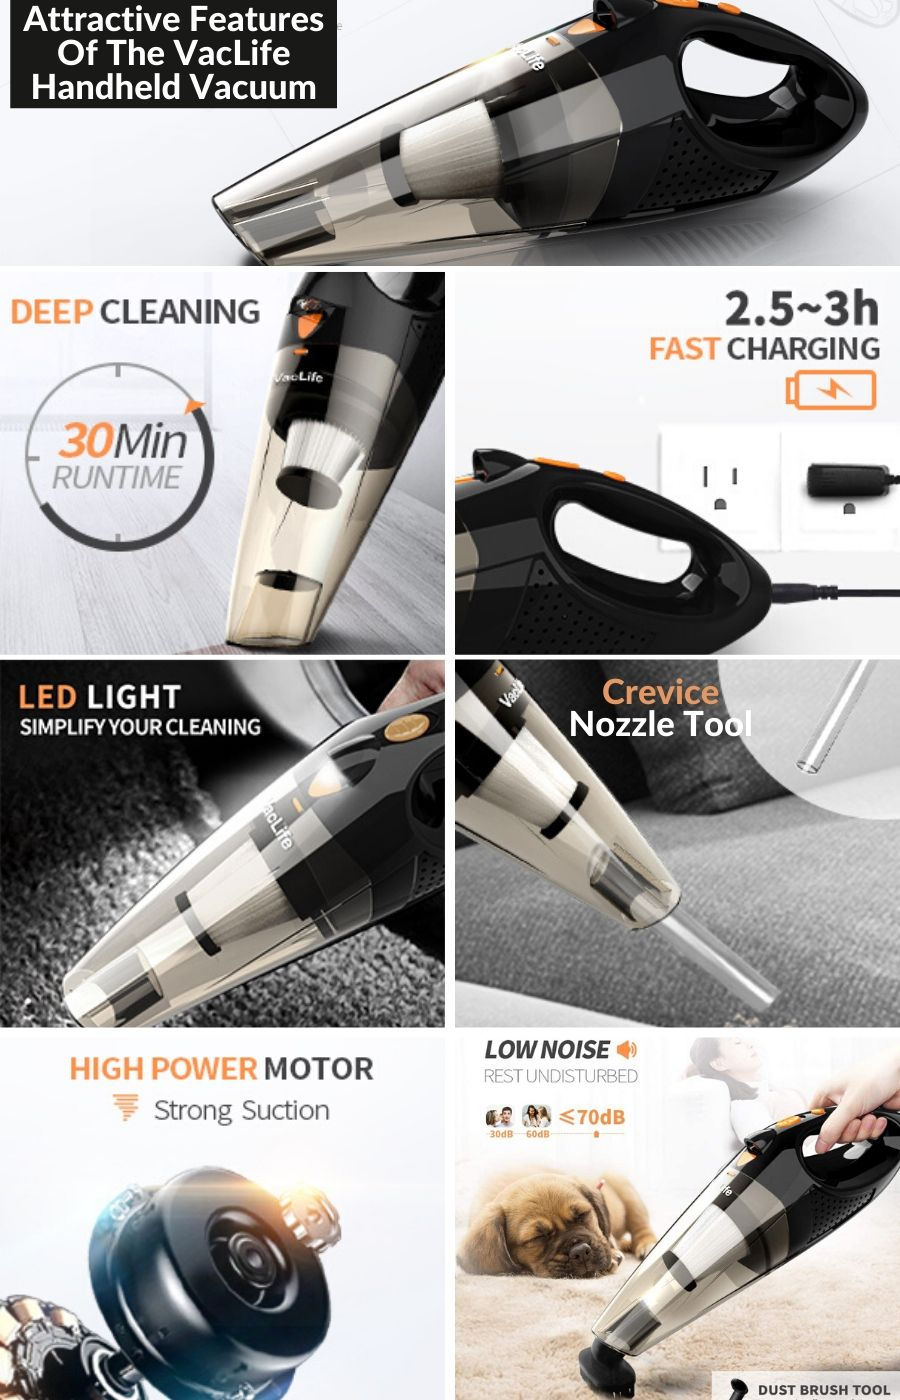 Attractive Features Of The VacLife Handheld Vacuum